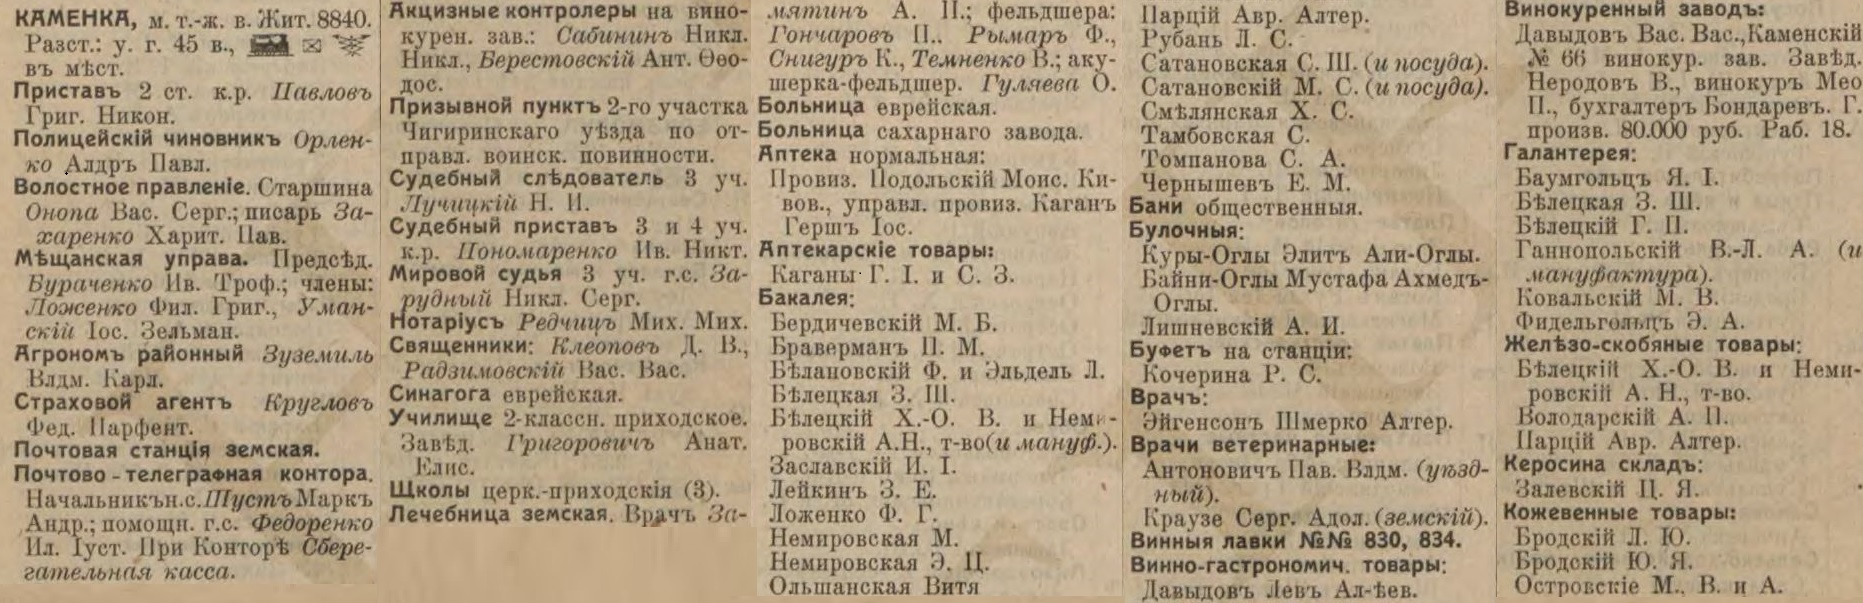 Kamenka entrepreneurs list from Russian Empire Business Directories by 1913